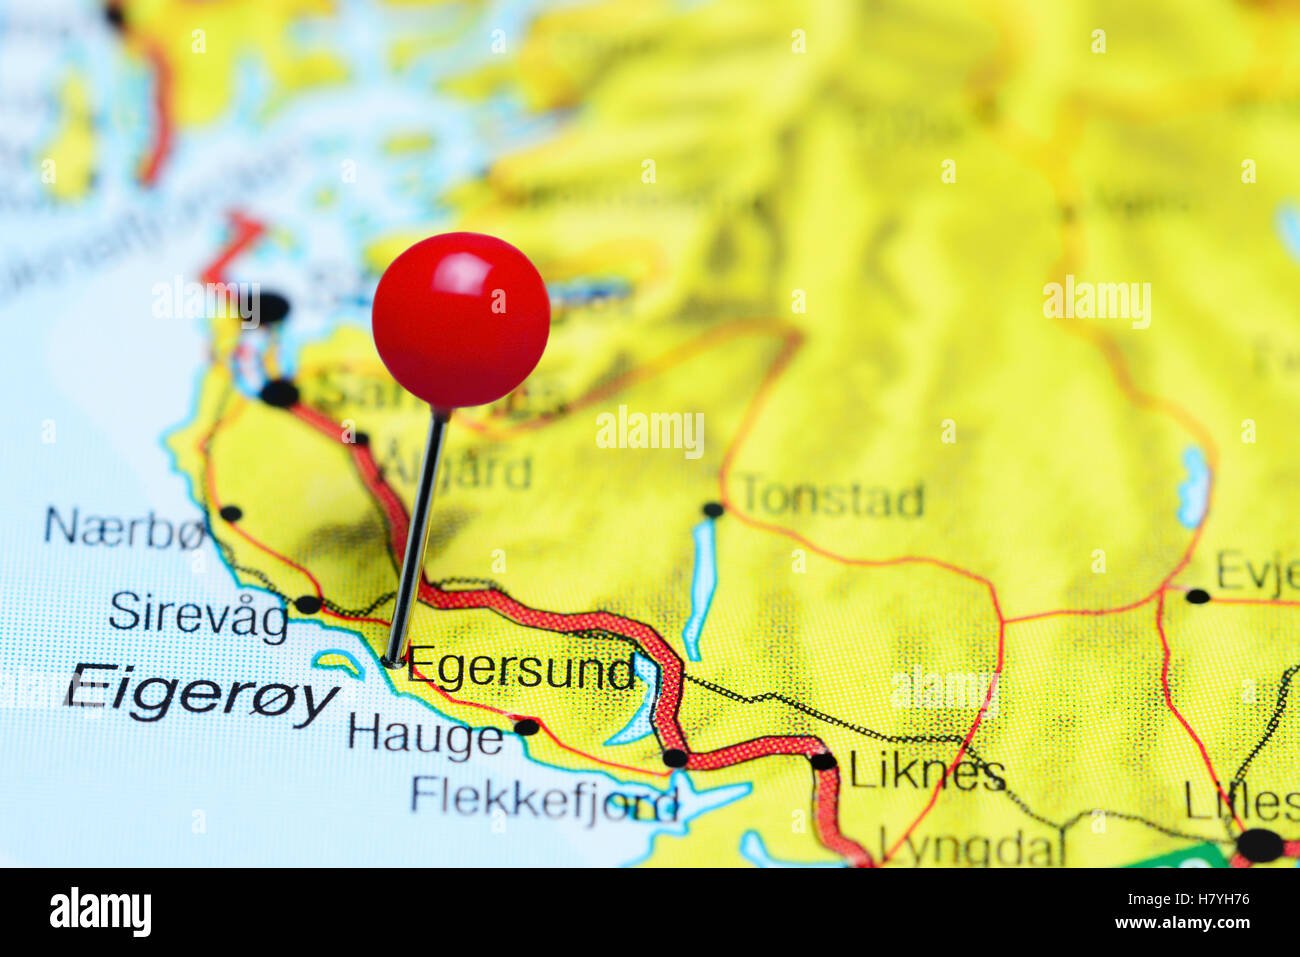 Egersund pinned on a map of Norway Stock Photo Royalty Free Image